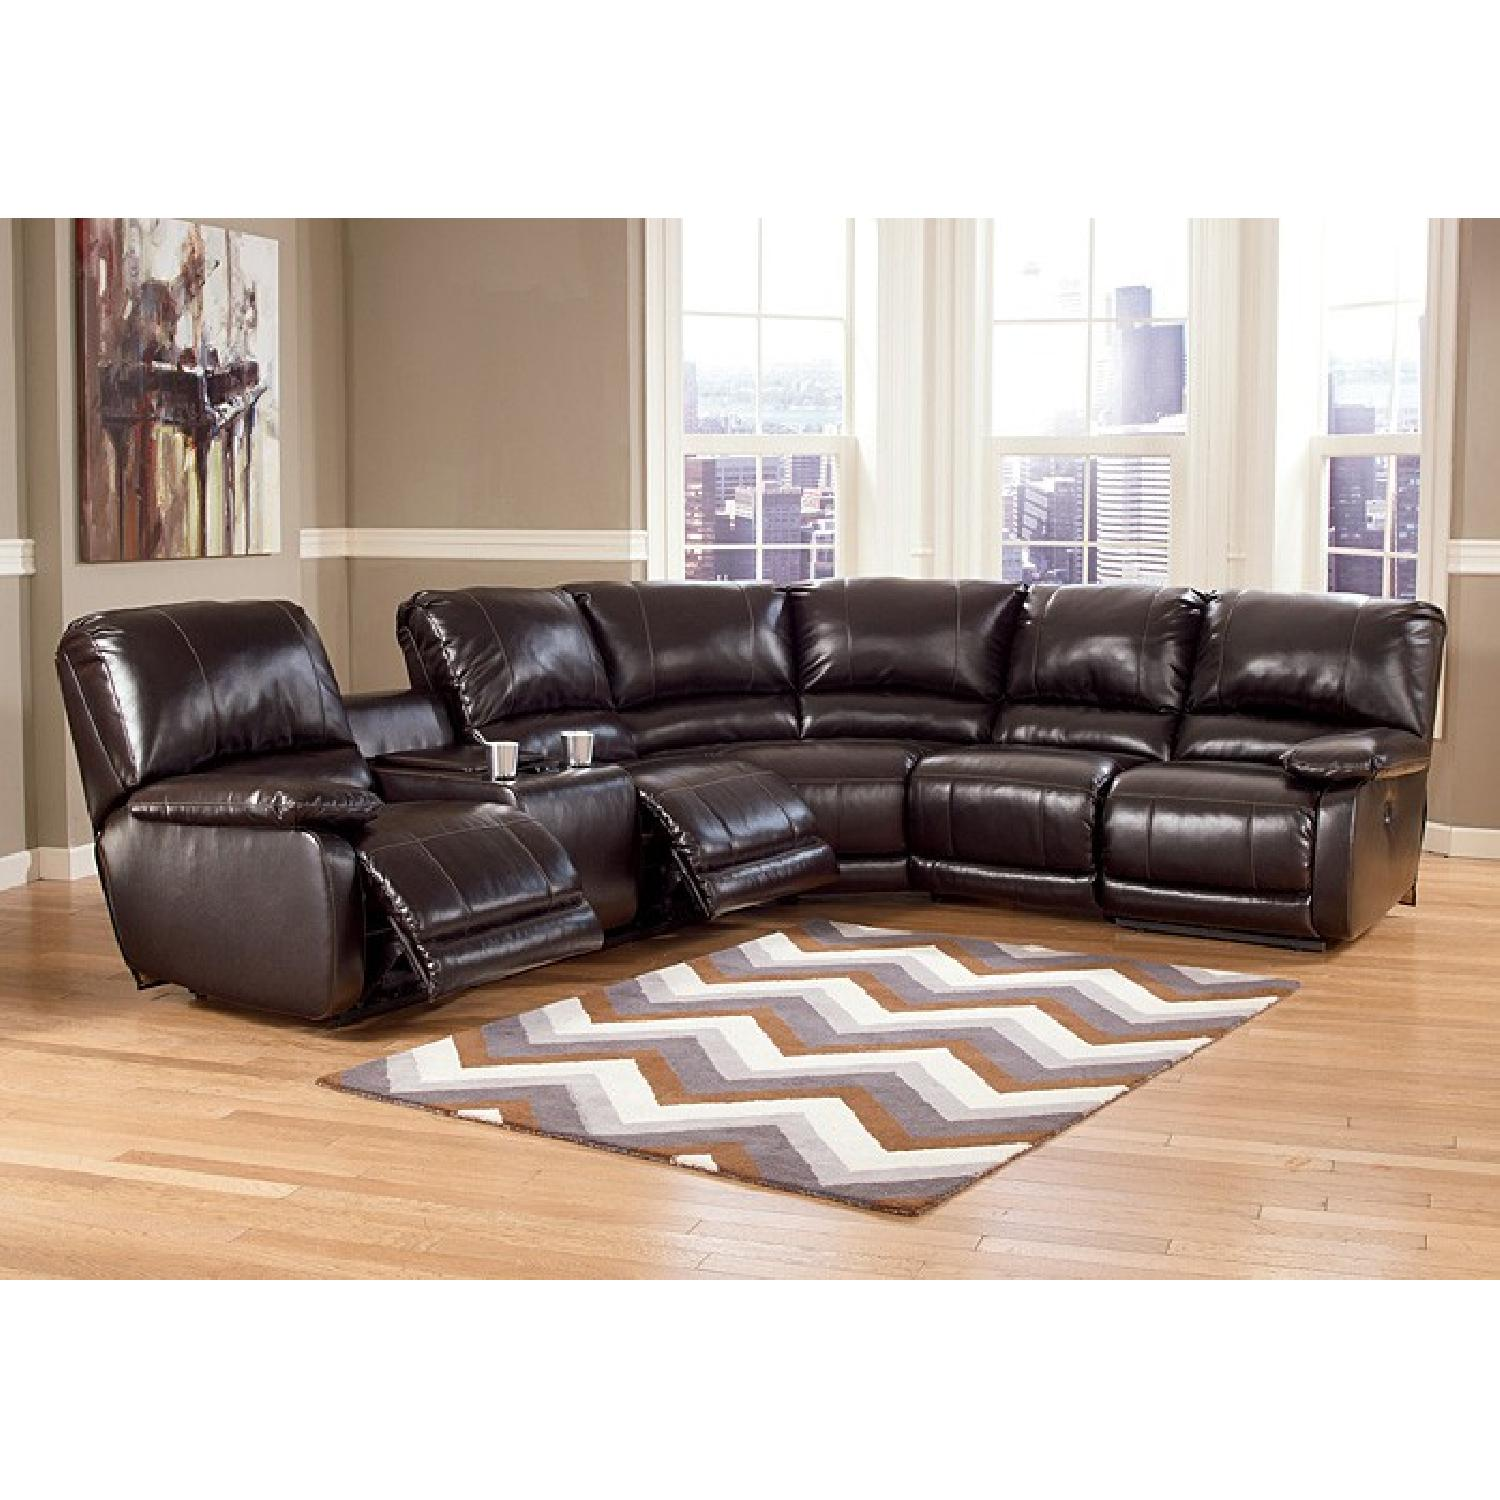 Ashley's Dark Brown Leather Blend 4 Power Recliner Sectional - image-1